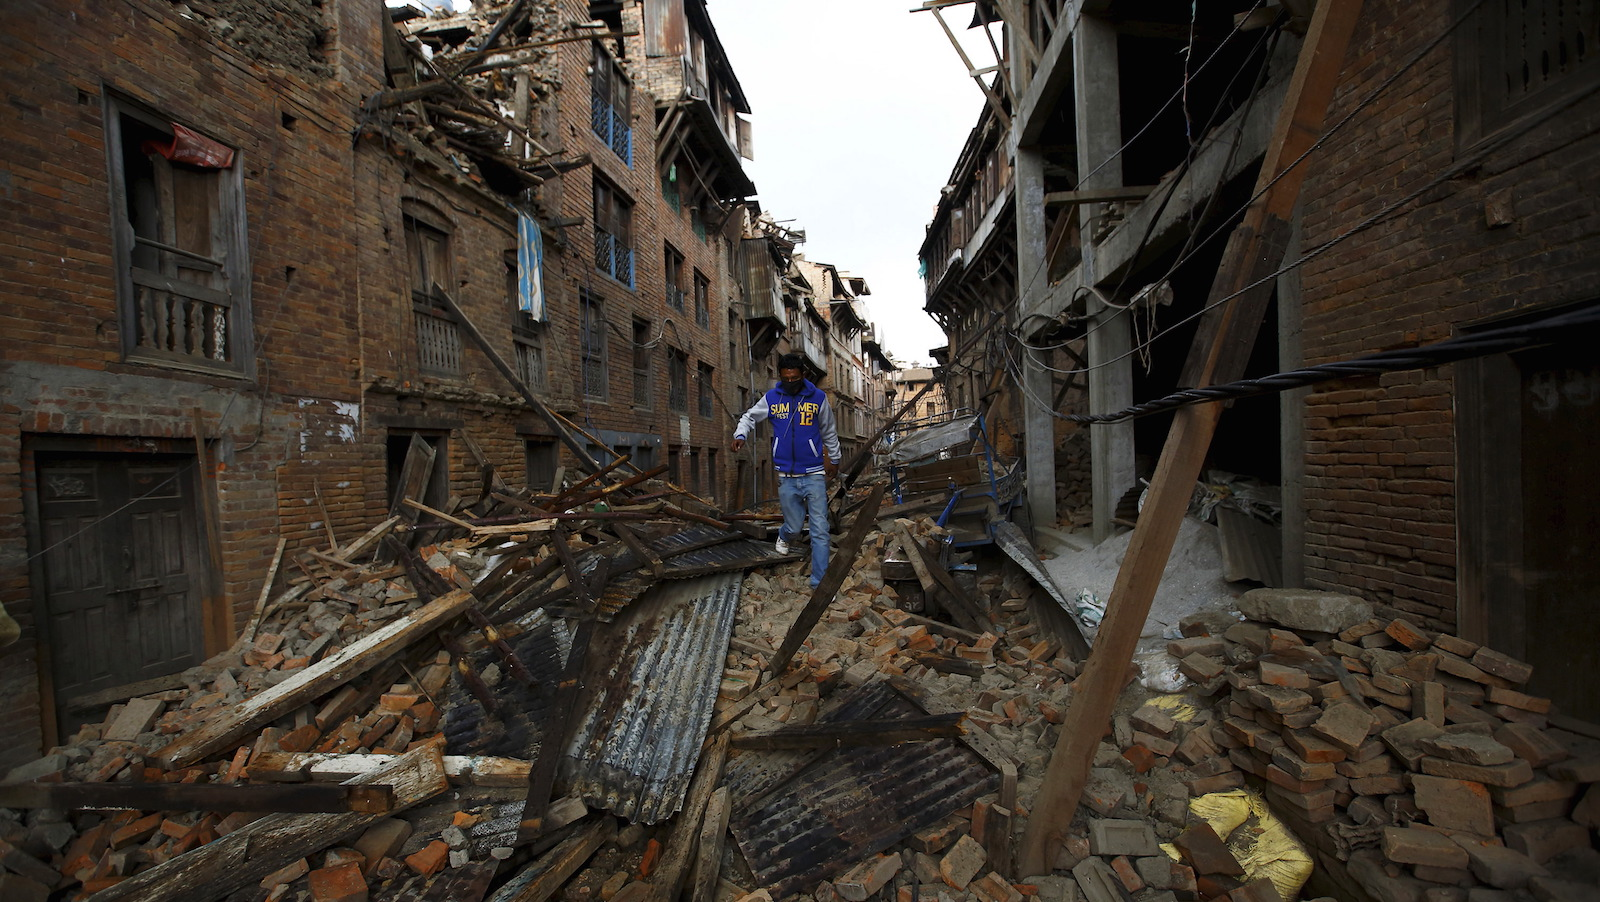 A man walks along the collapsed houses after the earthquake in Bhaktapur, Nepal April 27, 2015. Nepalese officials scrambled on Monday to get aid from the main airport to people left homeless and hungry by a devastating earthquake two days earlier, while thousands tired of waiting fled the capital Kathmandu for the surrounding plains. By afternoon, the death toll from Saturday's 7.9 magnitude earthquake had climbed to more than 3,700, and reports trickling in from remote areas suggested it would rise significantly.